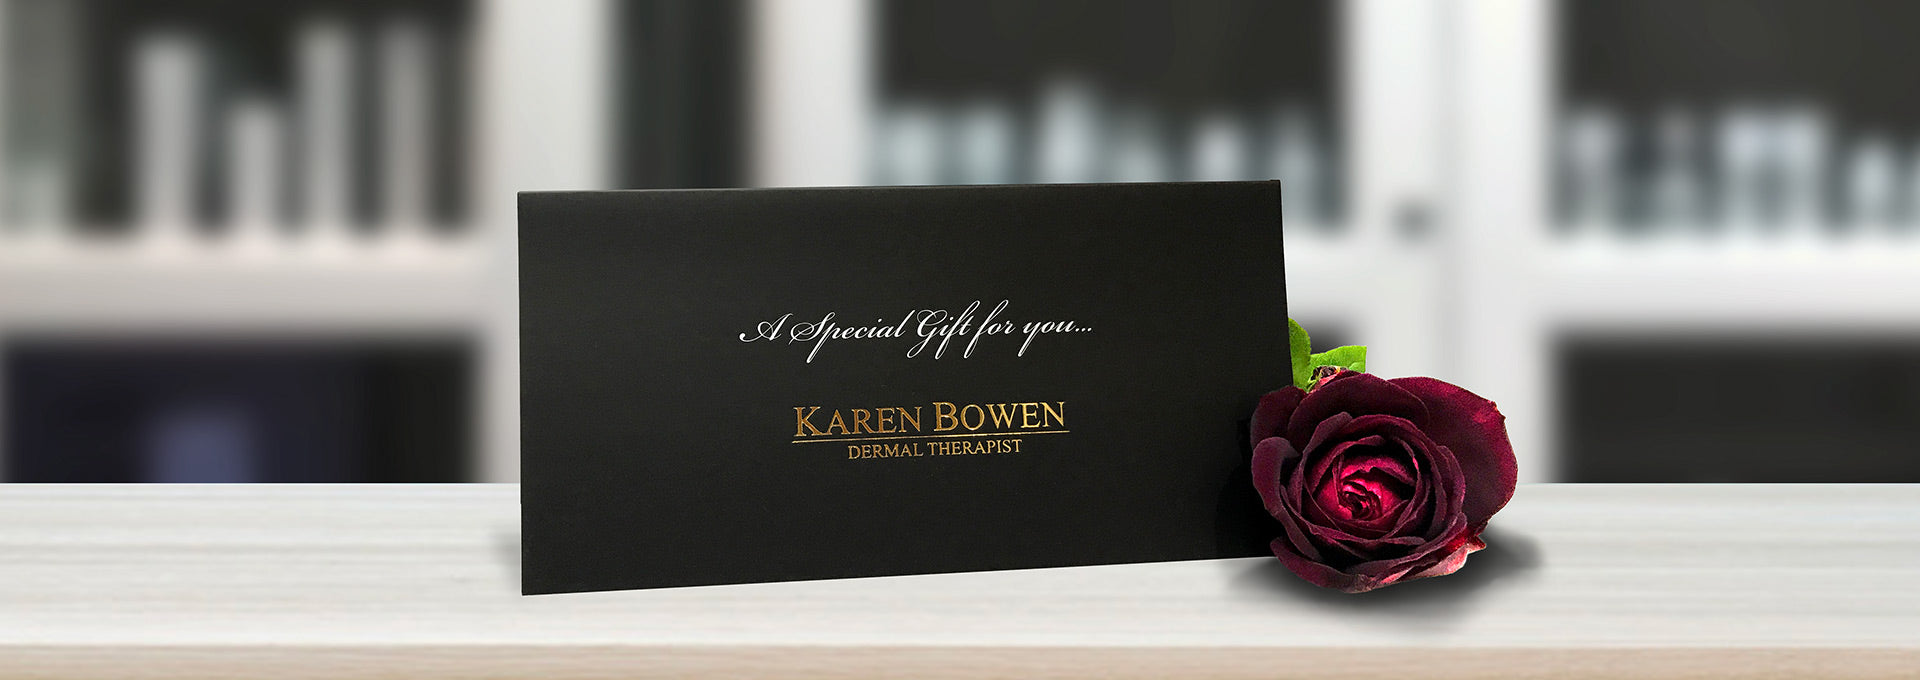 Gift Card for a Loved One - Karen Bowen Skin Care Clinic Perth